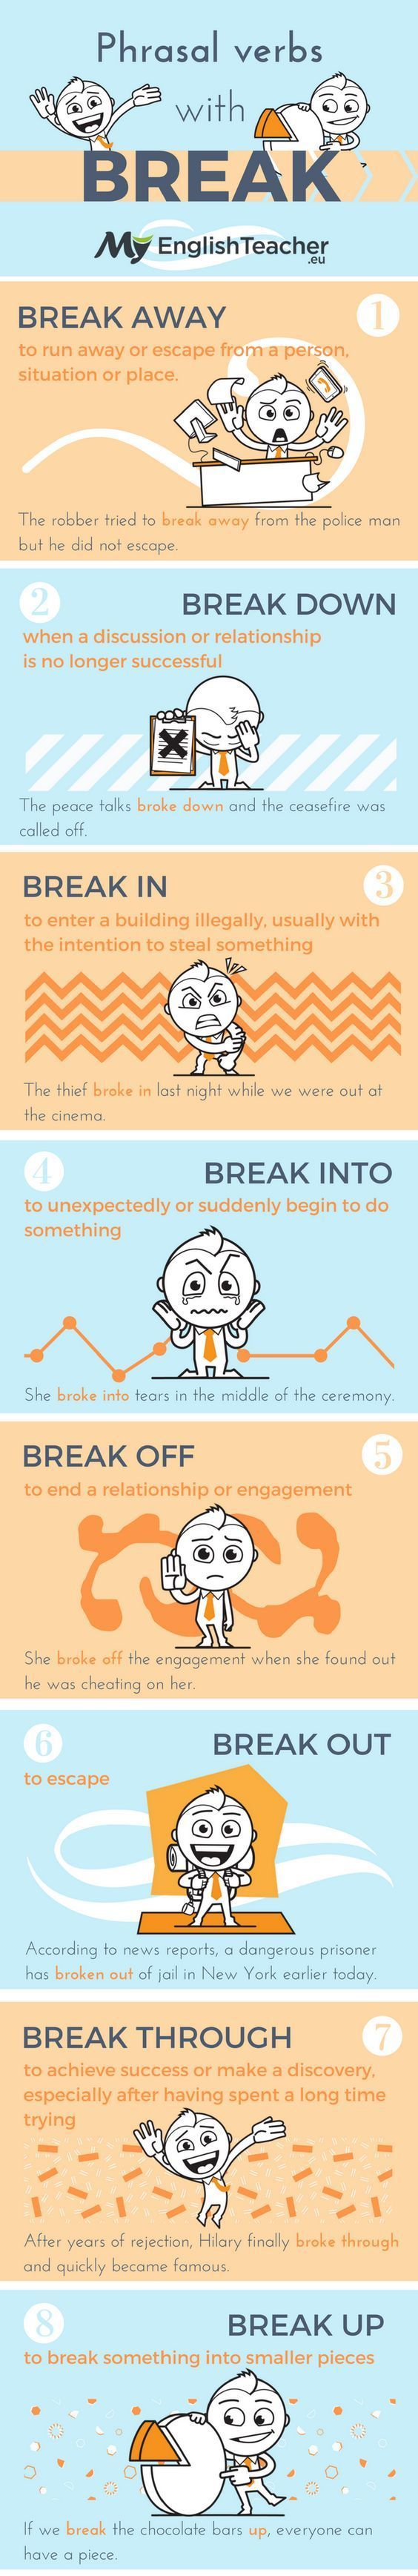 Phrasal verbs with BREAK